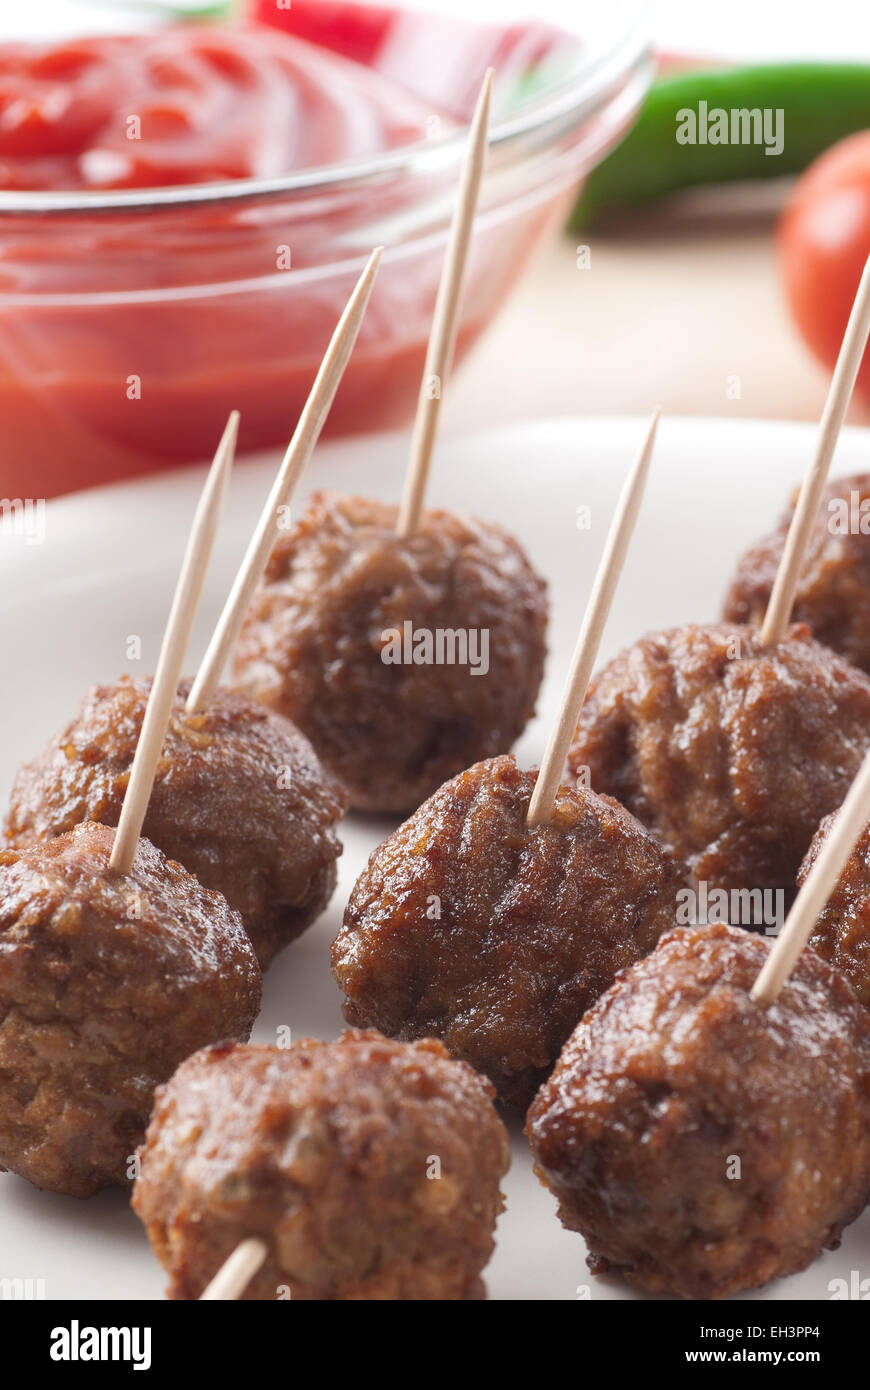 Meatballs on toothpicks, served with tomato sauce. - Stock Image